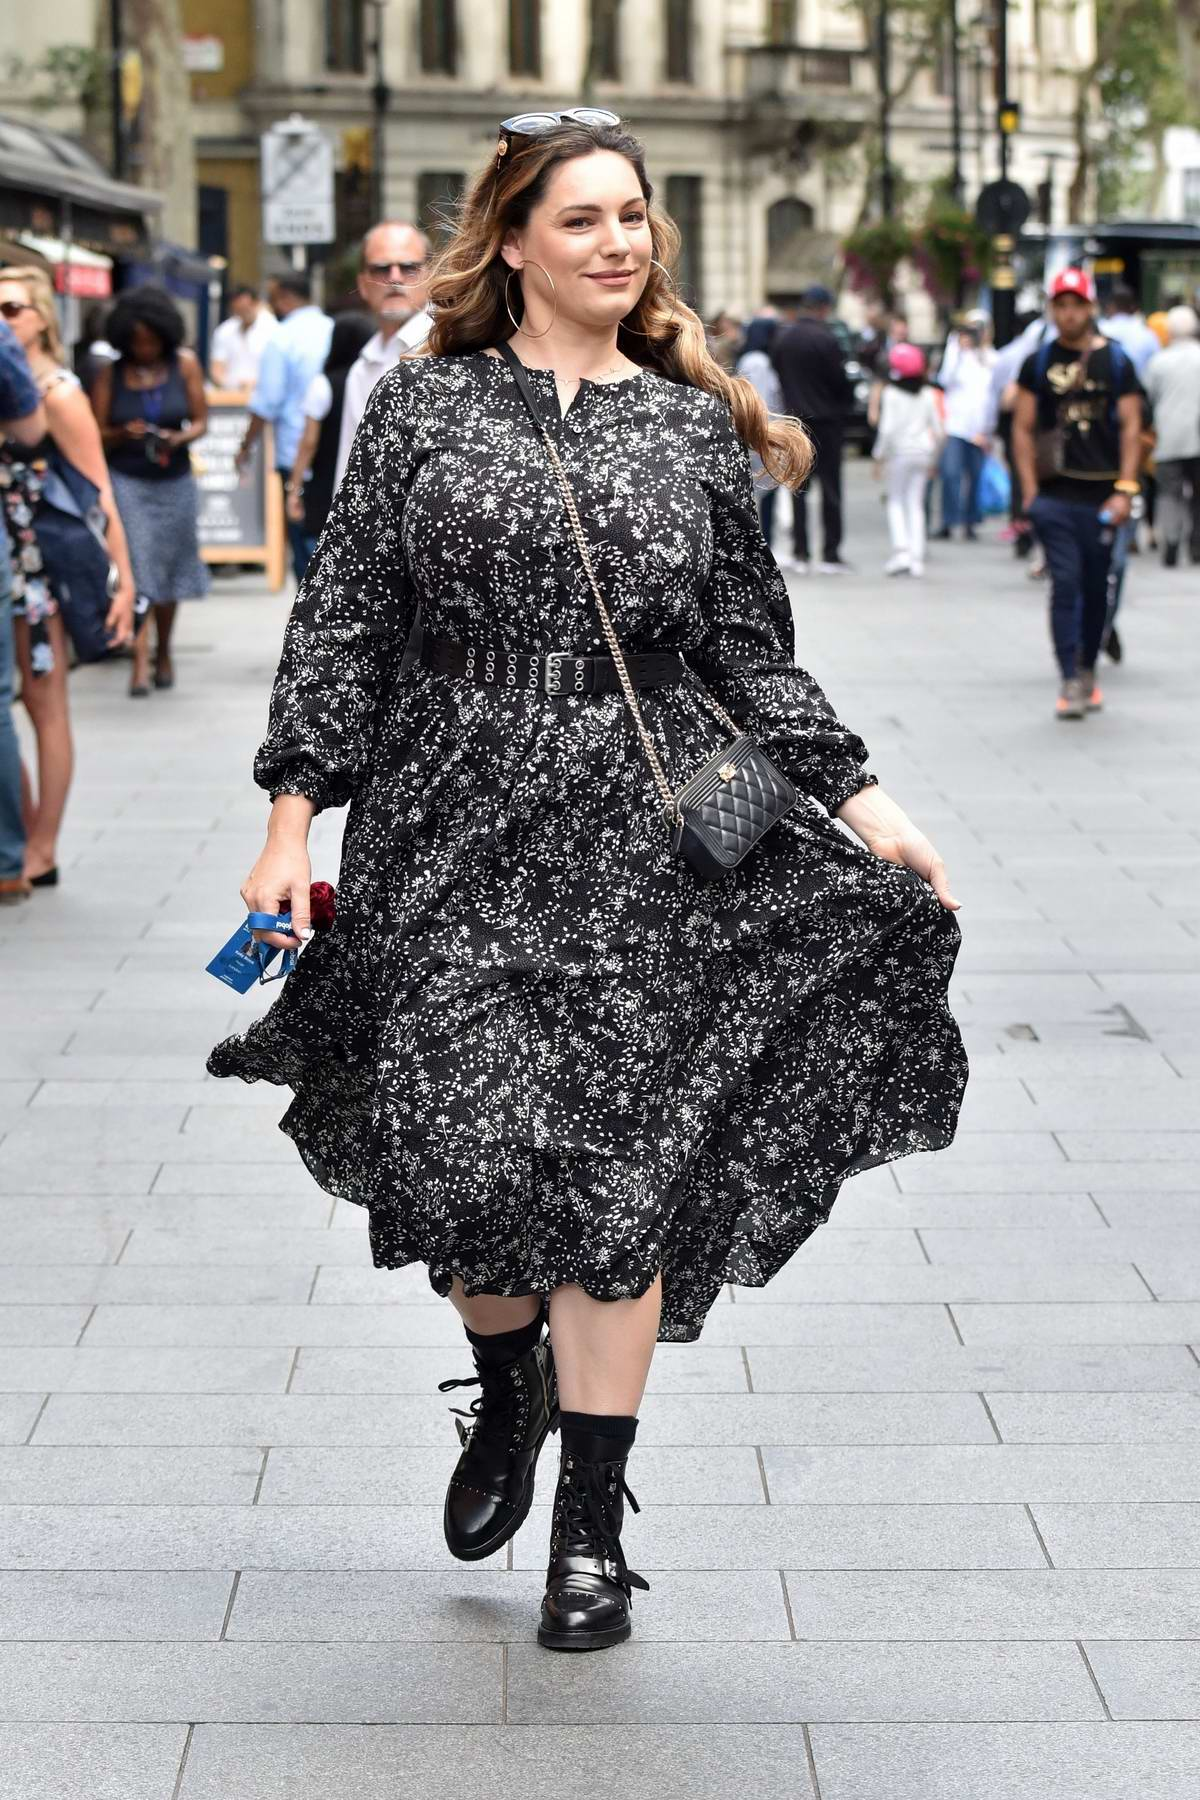 Kelly Brook dons a monochrome floral dress as she arrives for her show at Heart Radio in London, UK